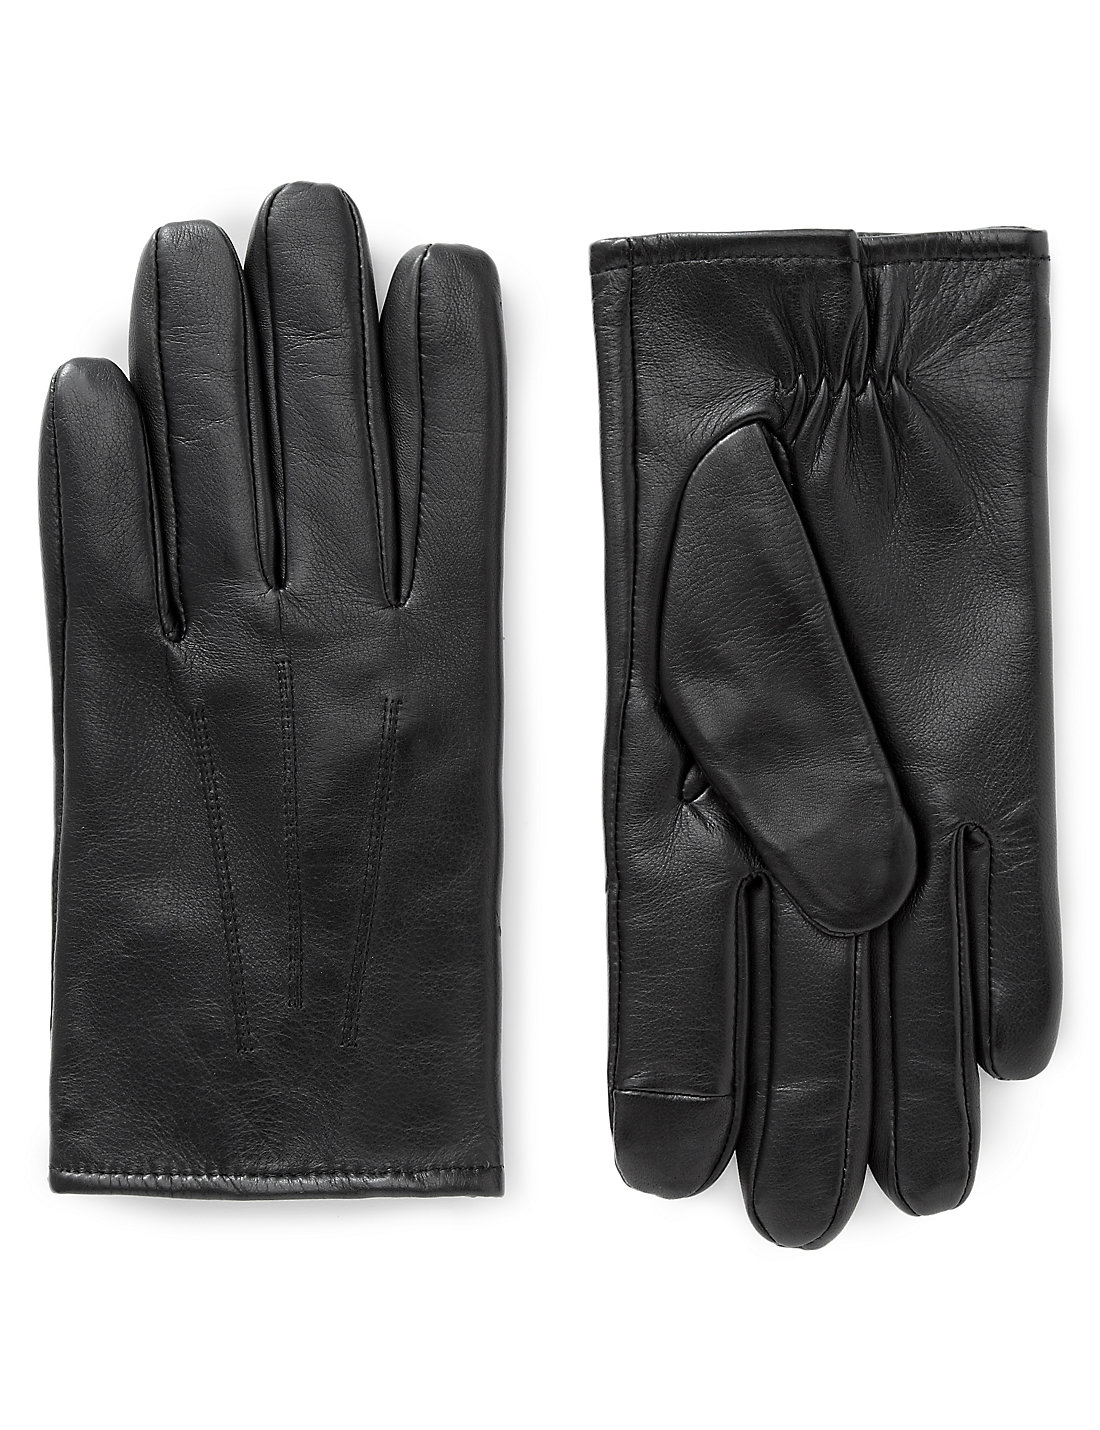 Mens leather gloves thinsulate - Leather Touchscreen Gloves With Thinsulate